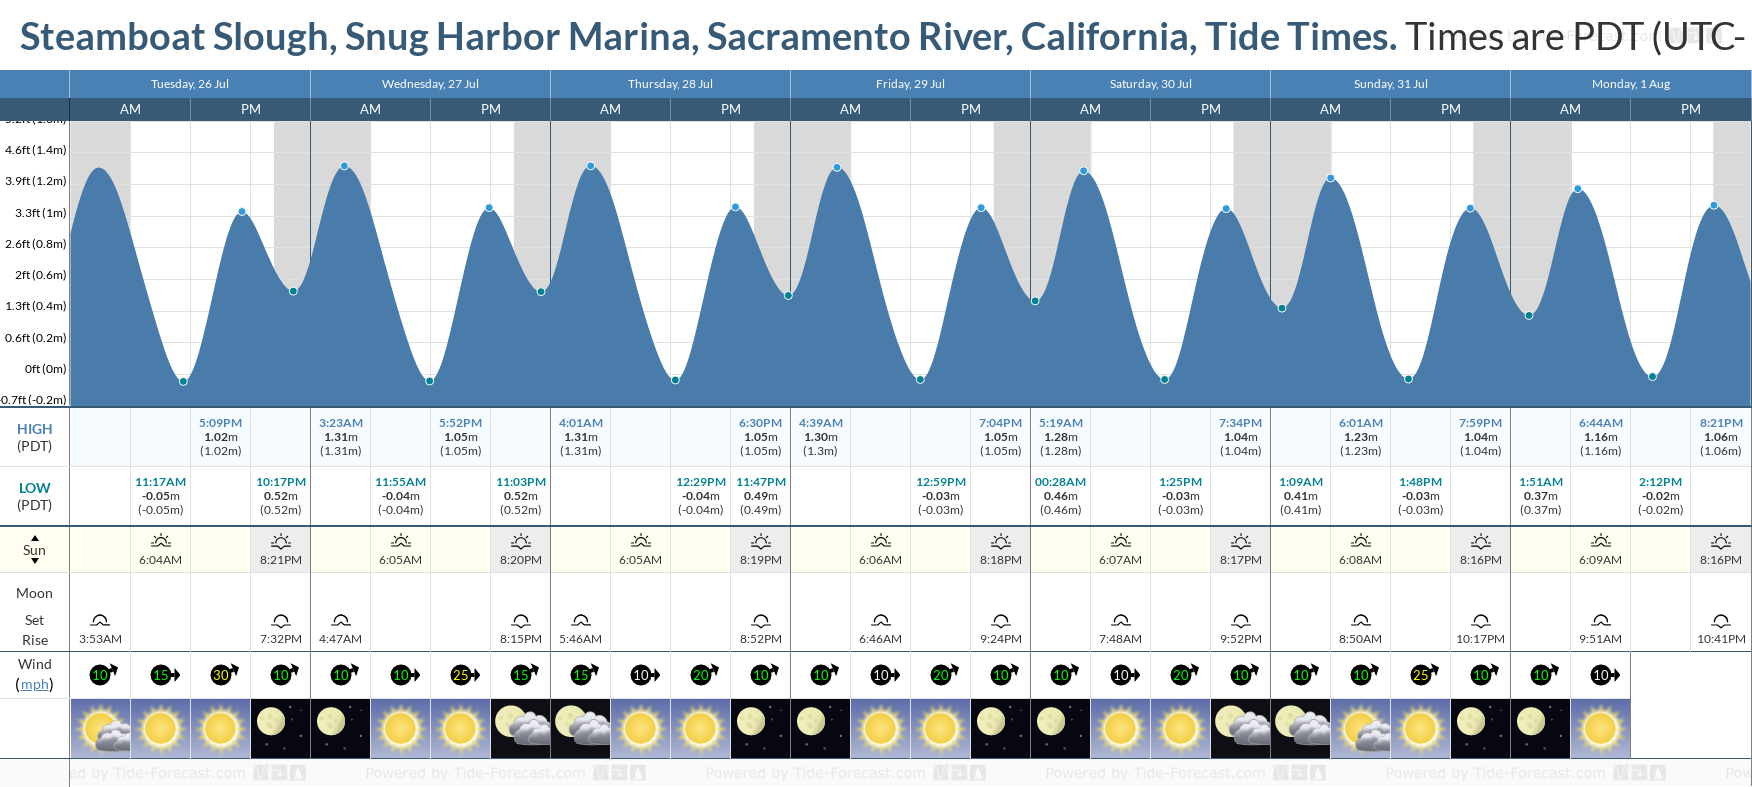 Steamboat Slough, Snug Harbor Marina, Sacramento River, California Tide Chart including high and low tide tide times for the next 7 days